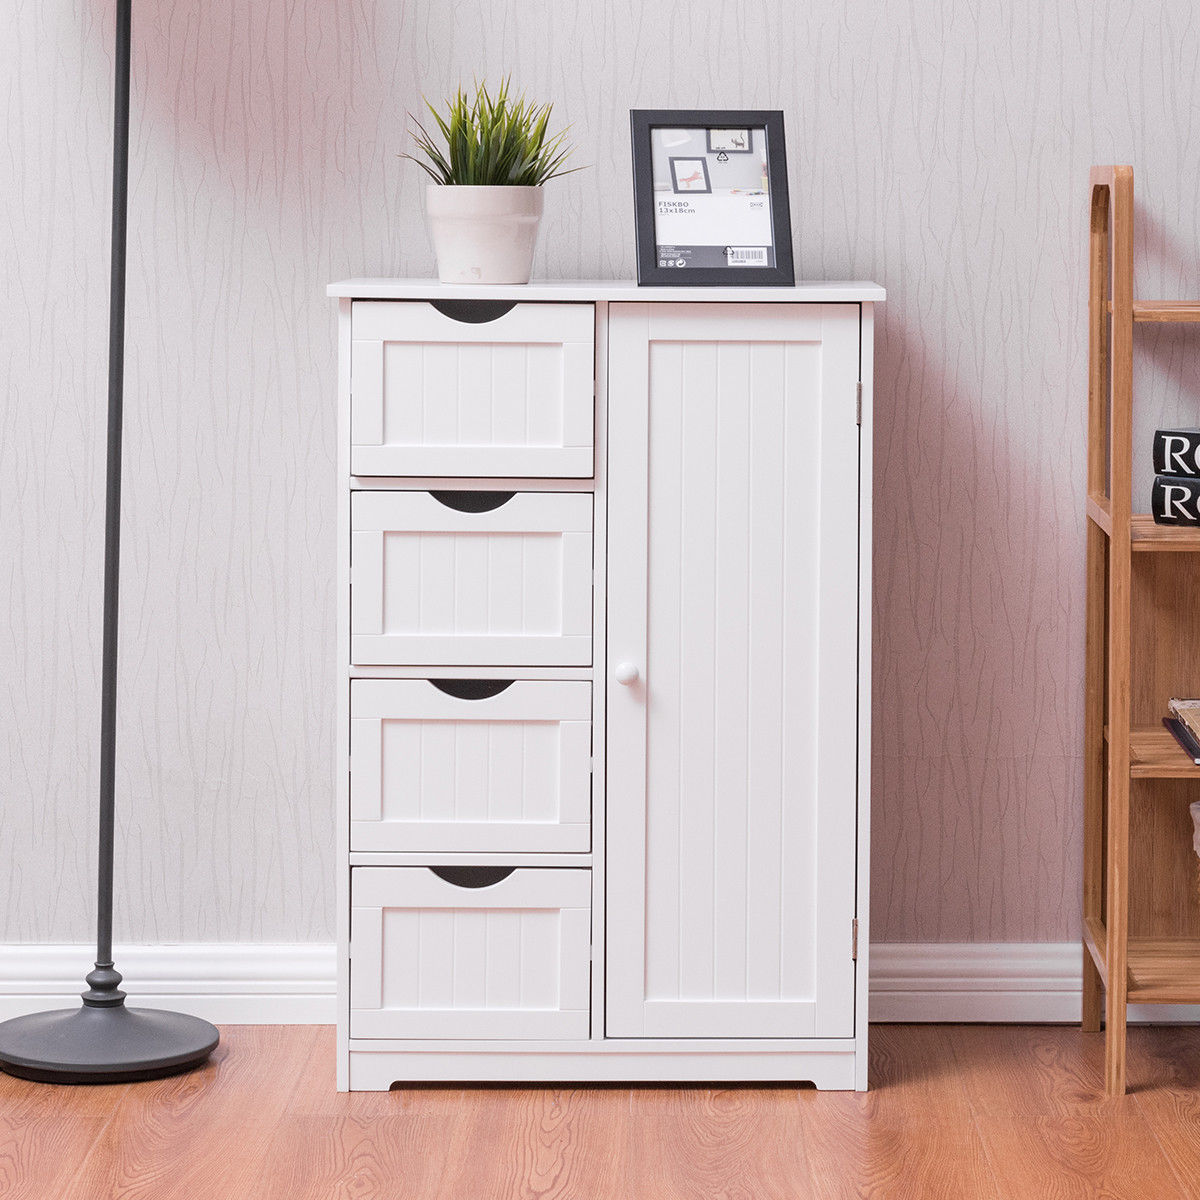 Beau Costway Wooden 4 Drawer Bathroom Cabinet Storage Cupboard 2 Shelves Free  Standing White